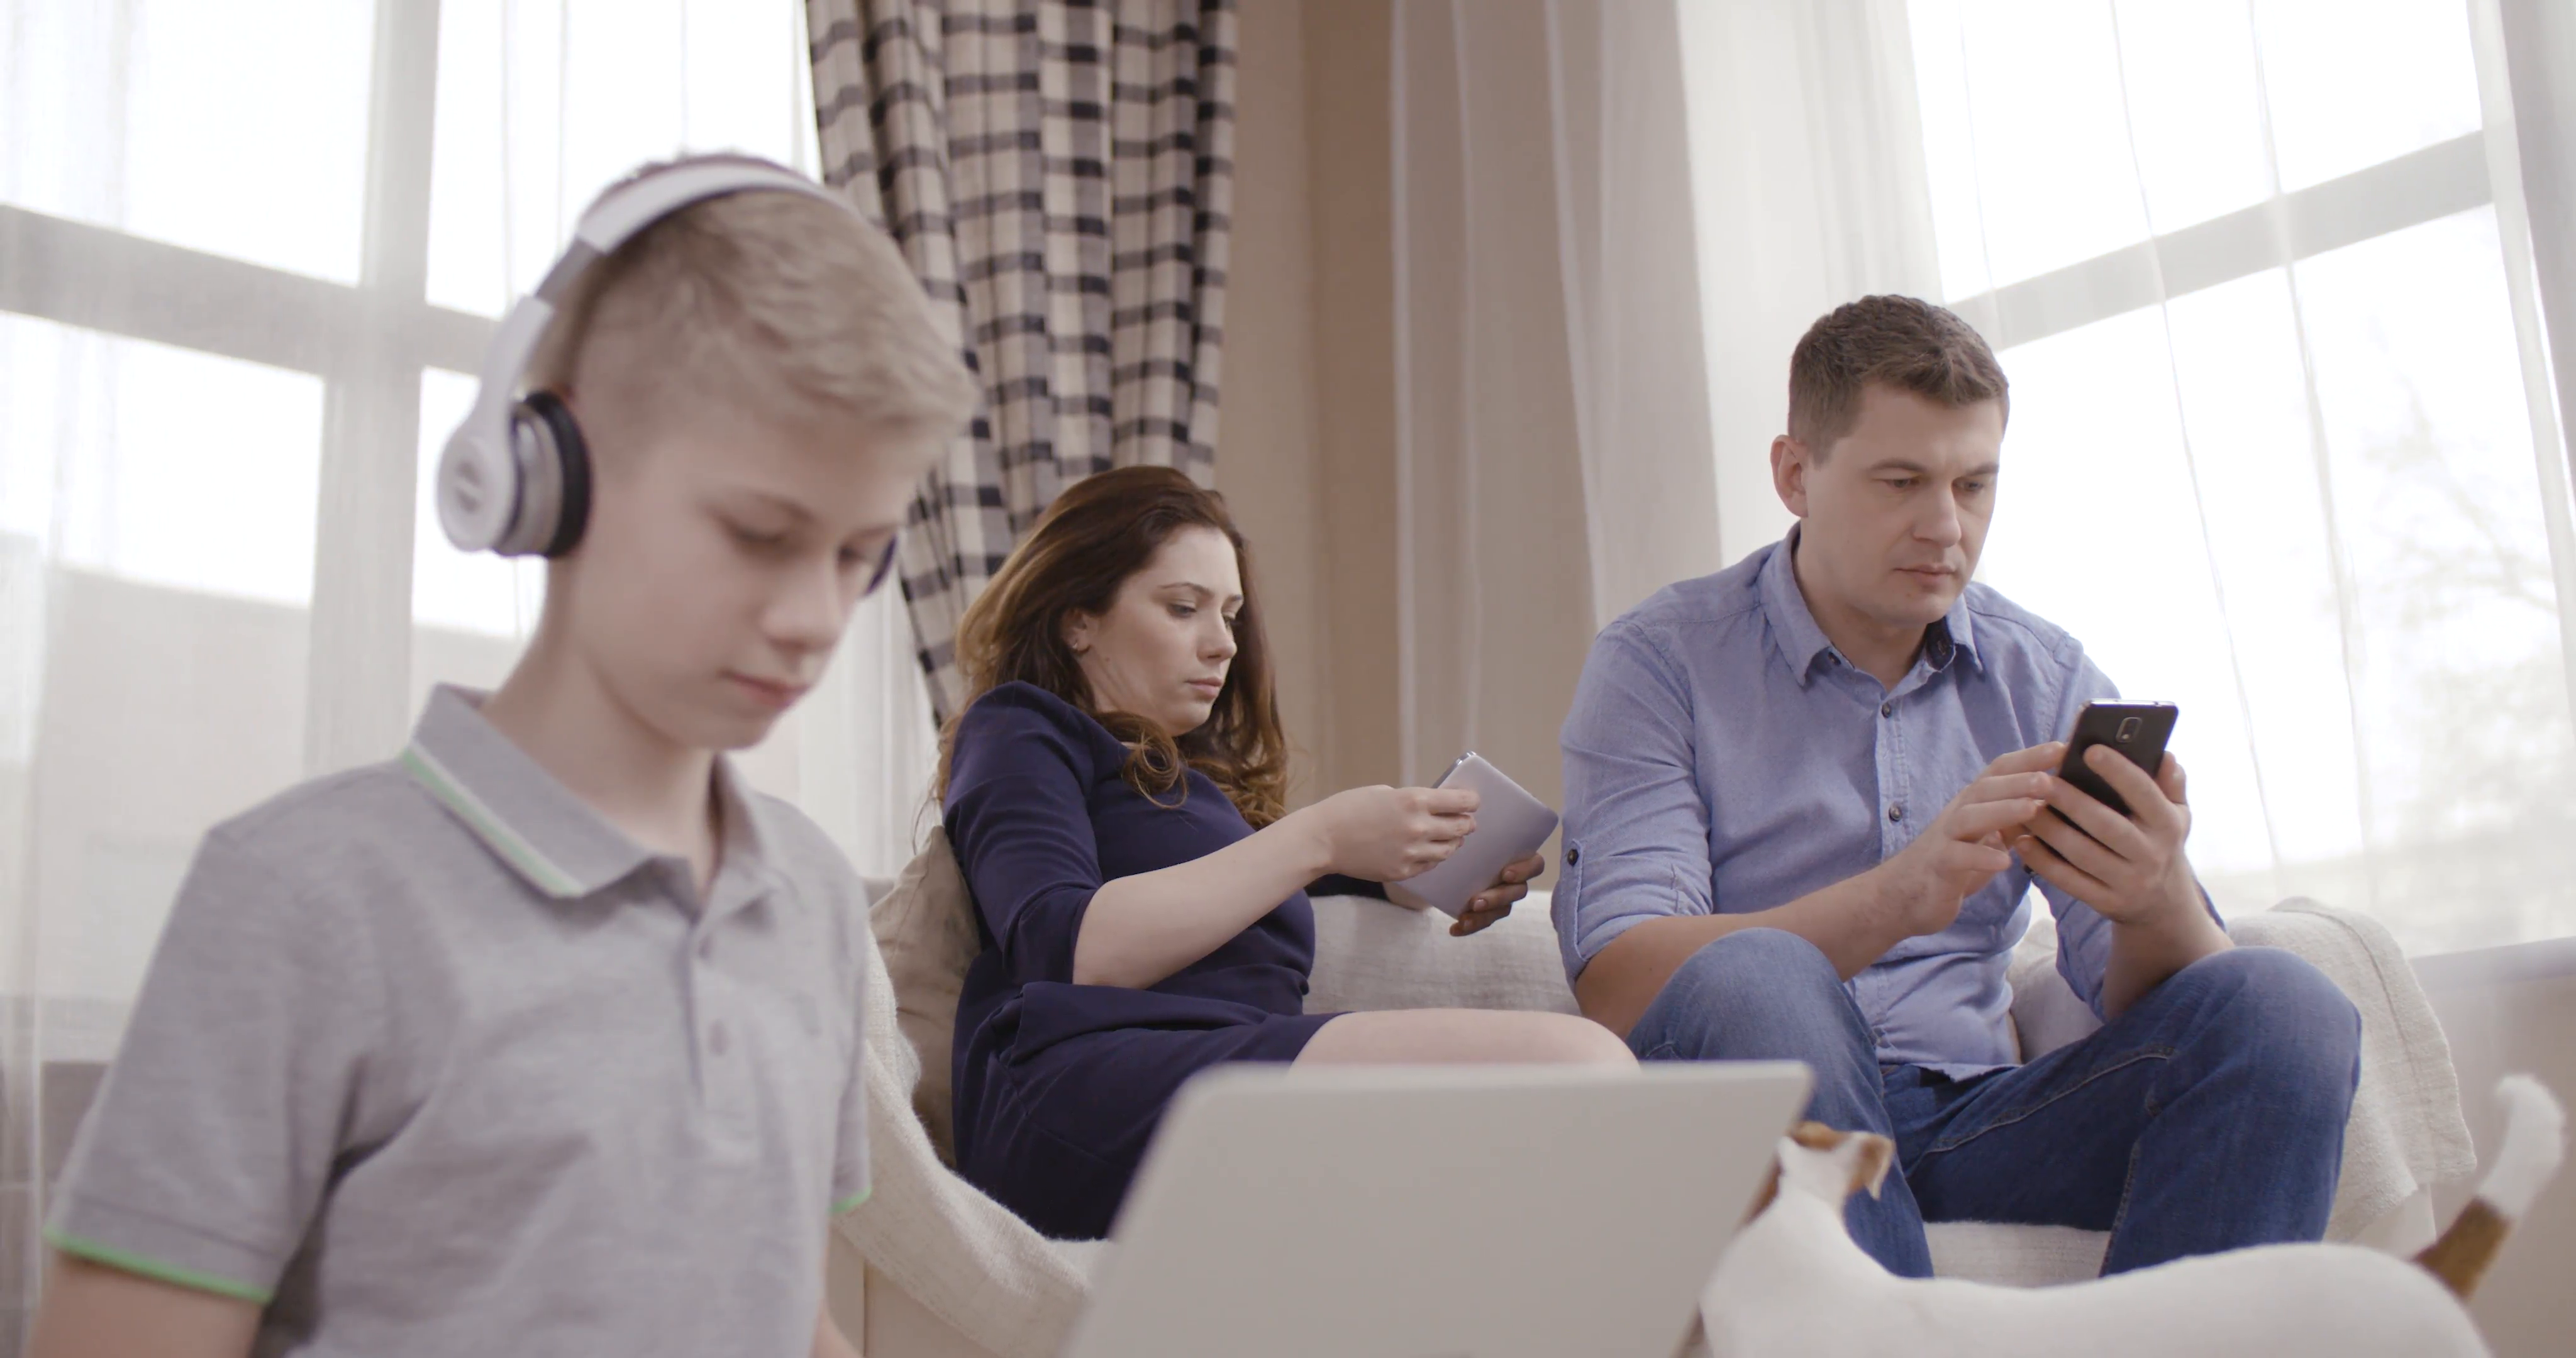 Family of three people uses gadgets and does not communicate ...